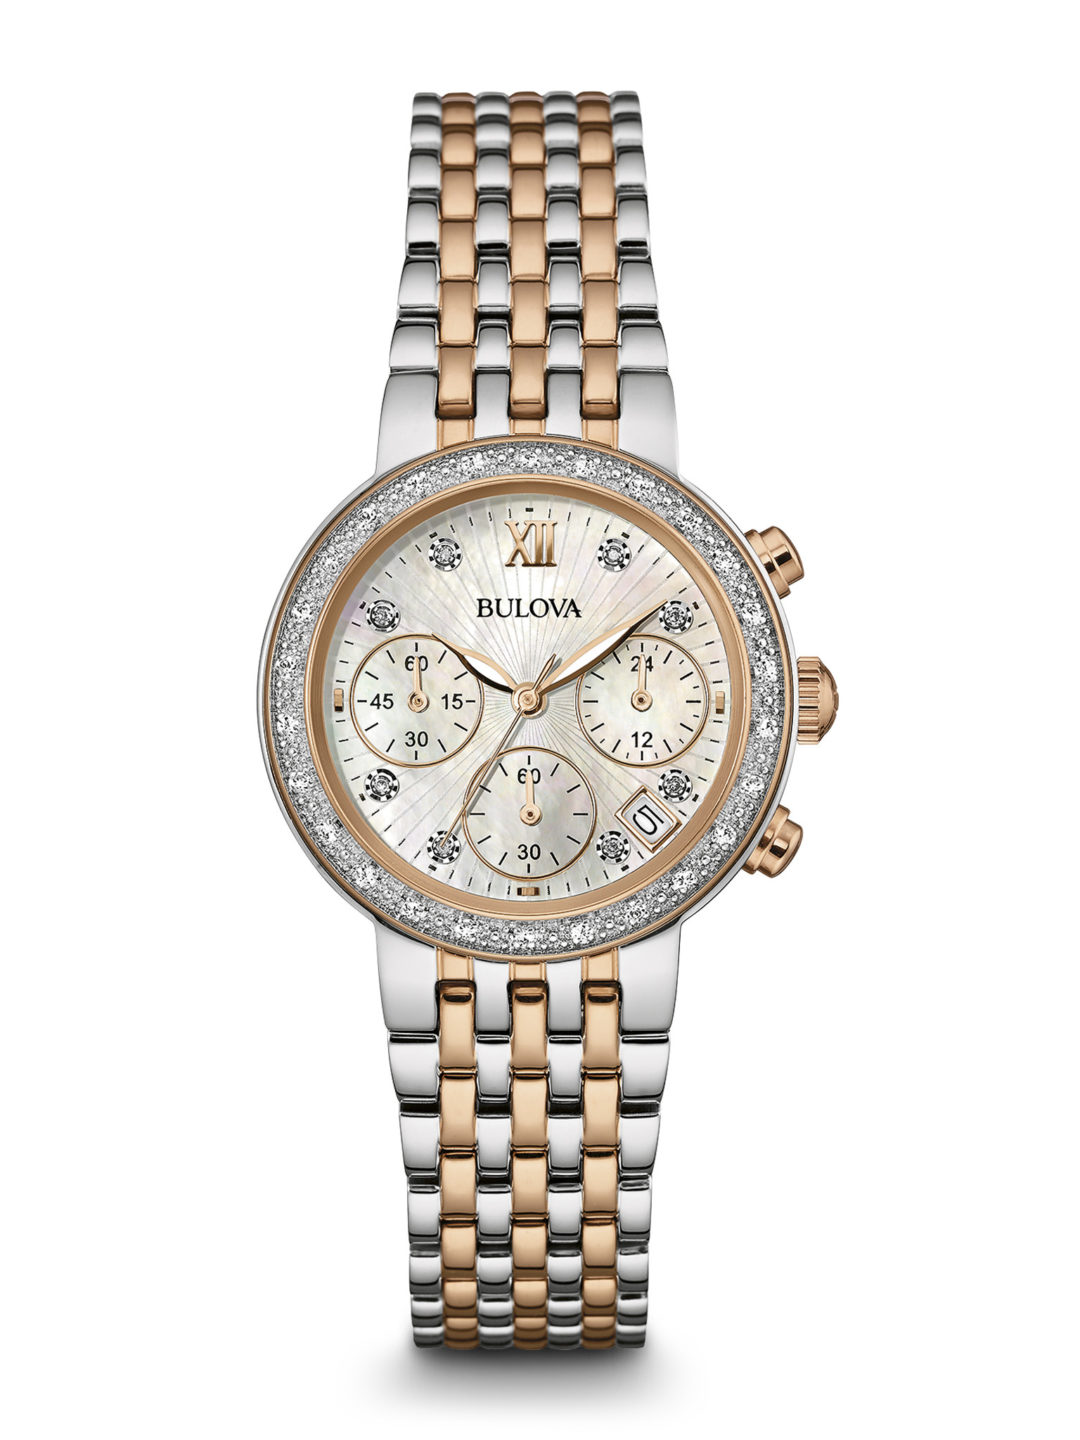 womens-bulova-watch-chronograph-diamond-98r215.jpg